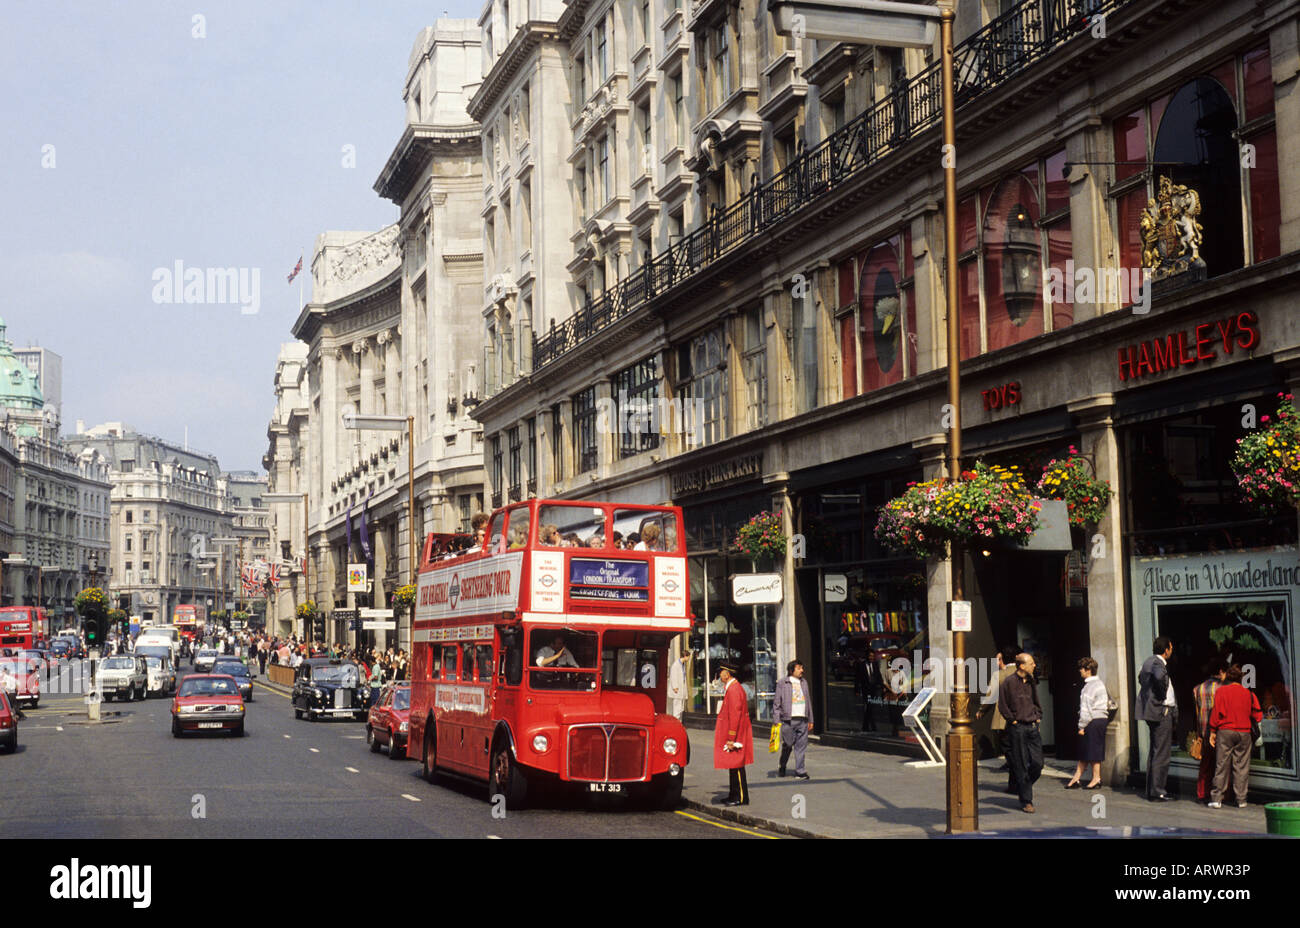 Regent Street London Hamleys Sightseeing red bus toy store shop shoppers shopping West End England UK - Stock Image